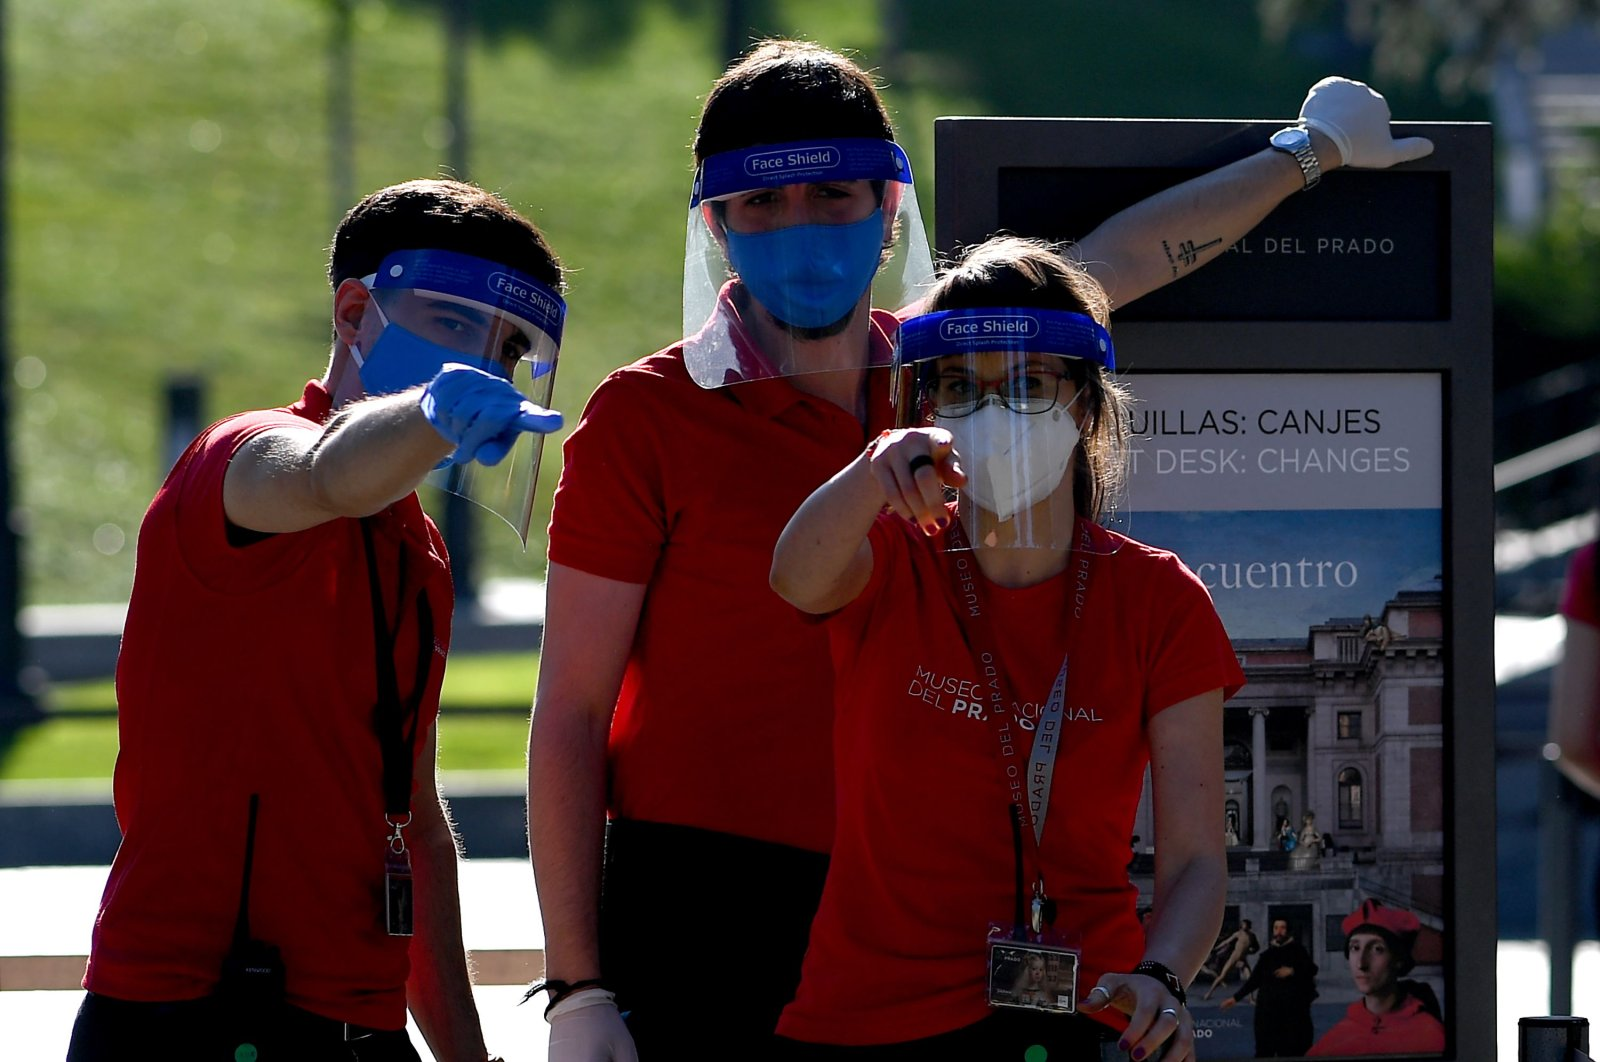 Employees wearing face masks and shields place information panels outside The Prado Museum in Madrid, on June 6, 2020. (AFP Photo)